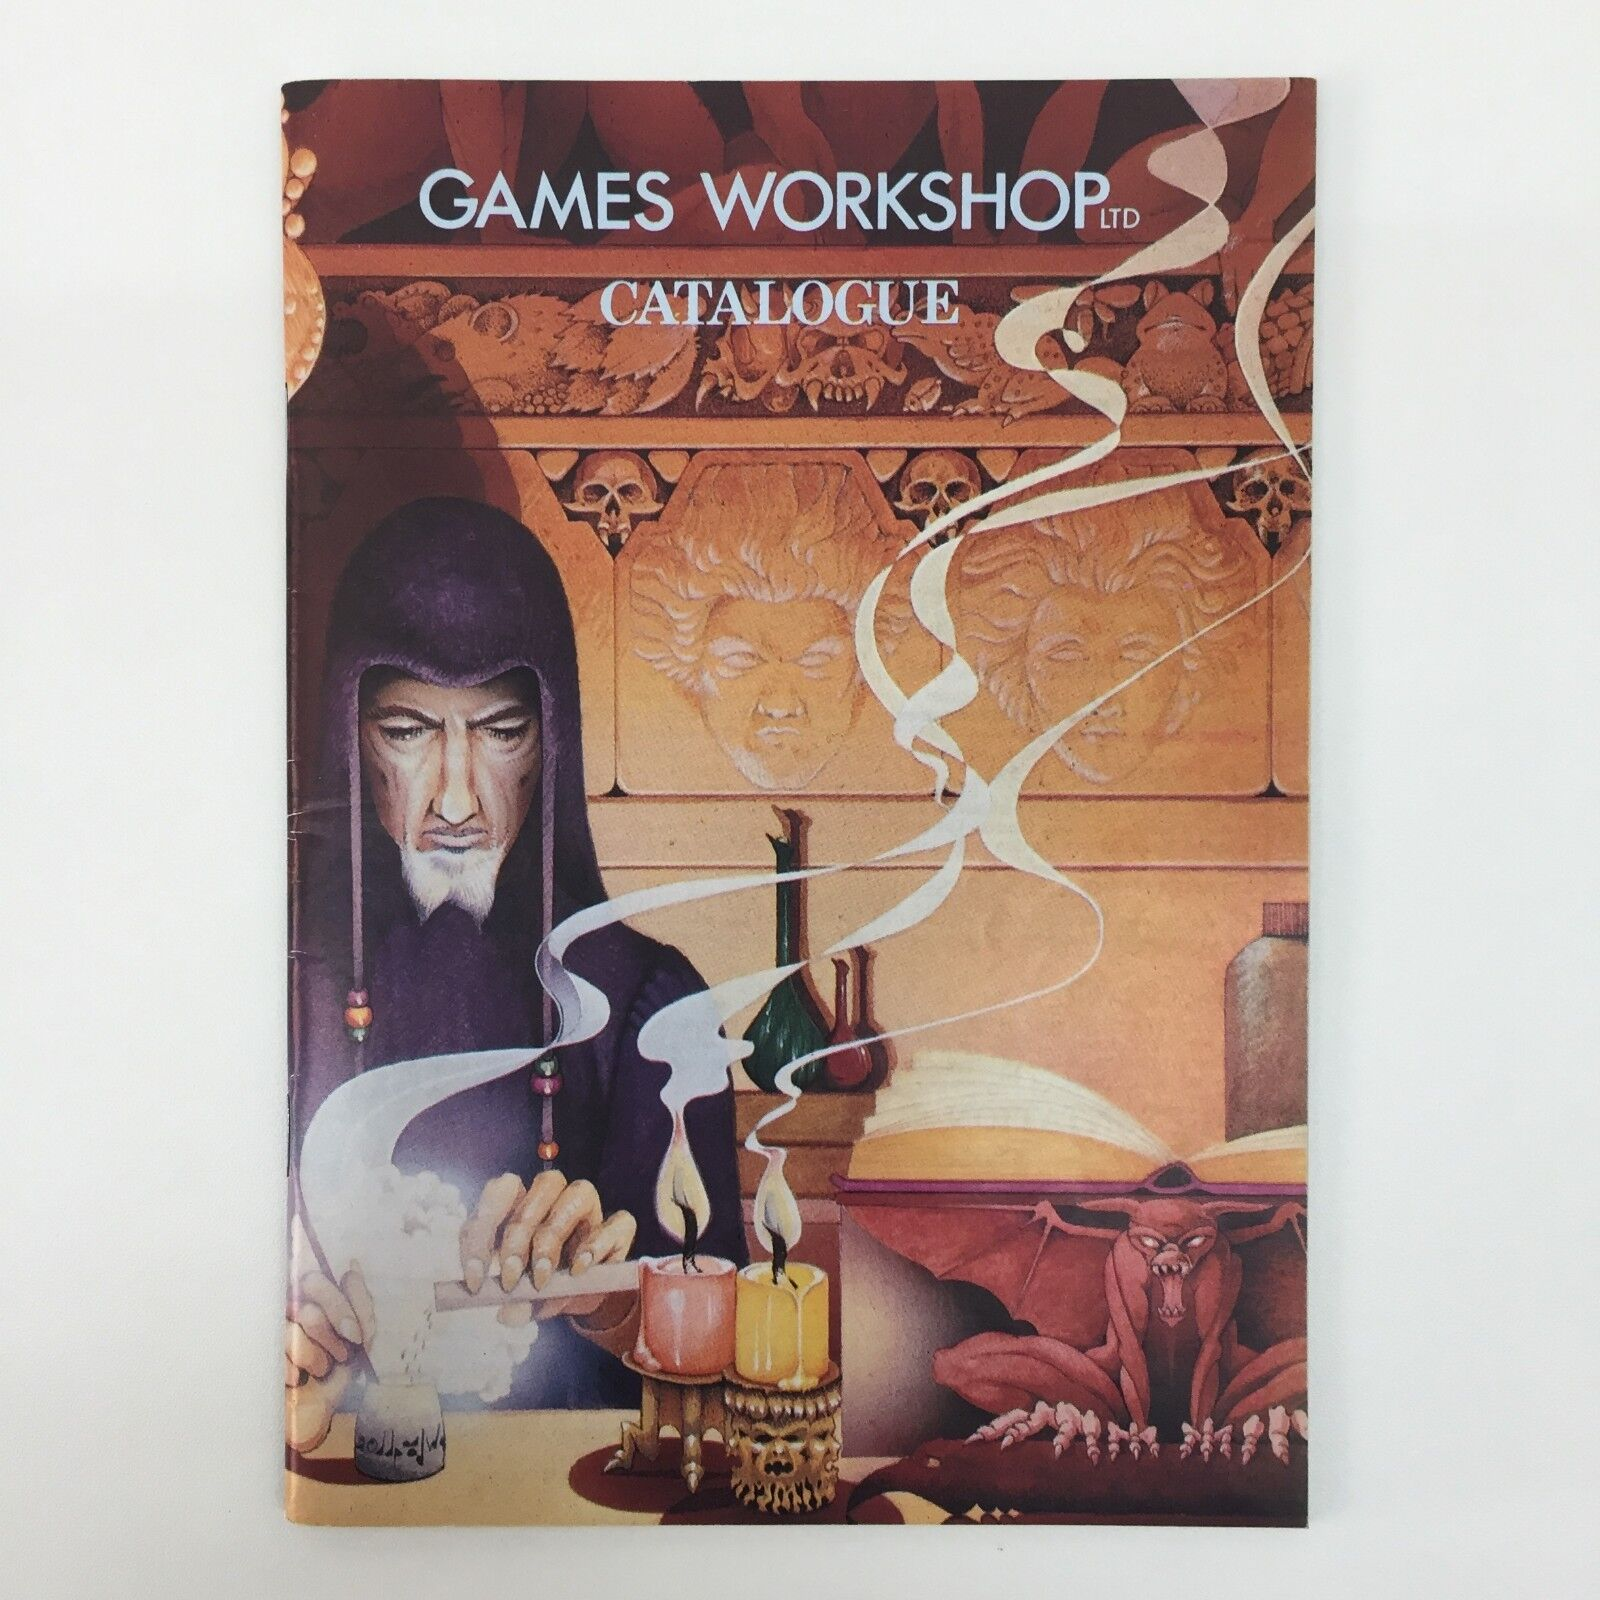 GAMES WORKSHOP LTD CATALOGUE VINTAGE RARE TSR D&D CITADEL WHITE DWARF (1981)